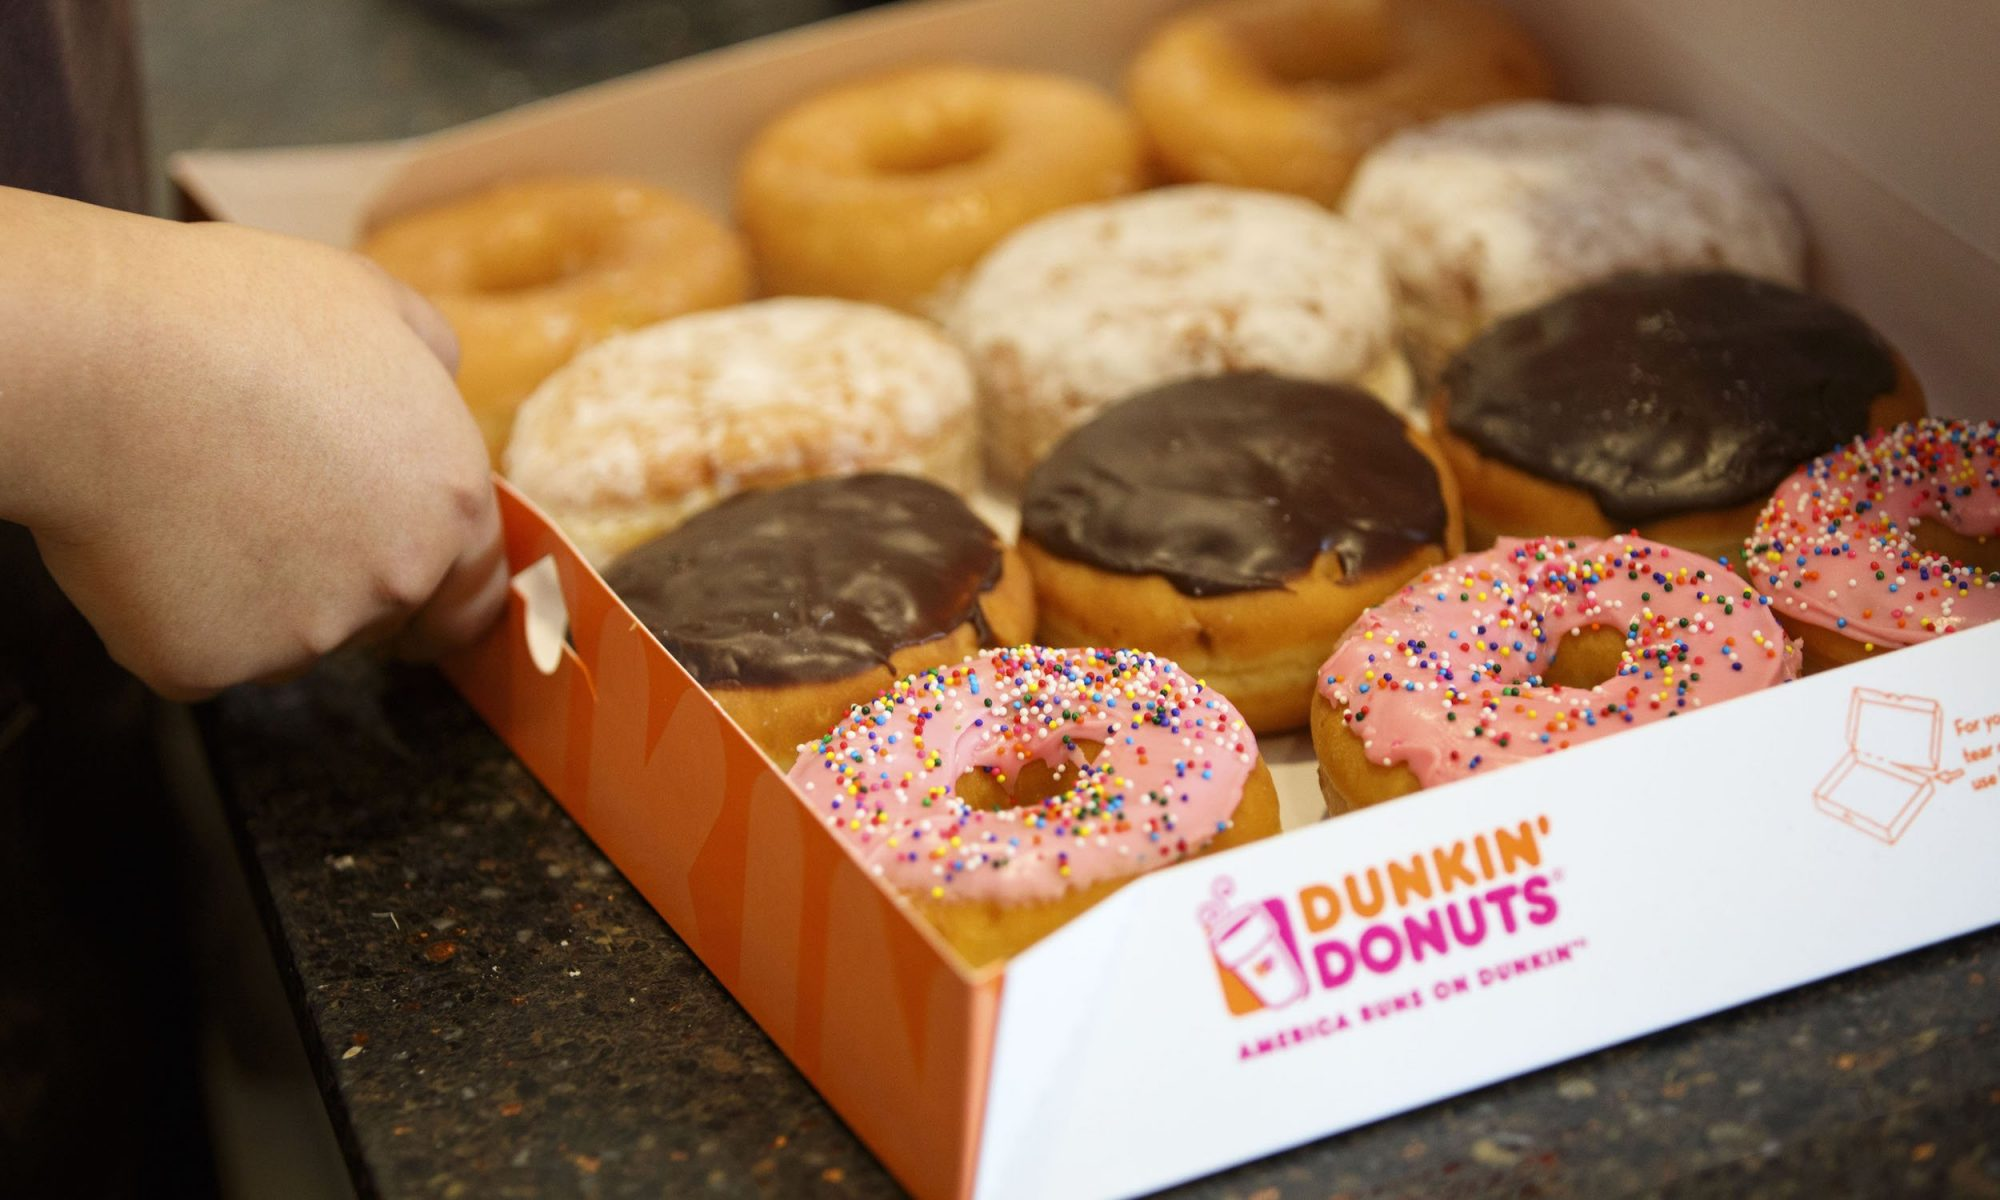 Here's How to Win a Year's Worth of Dunkin' Donuts